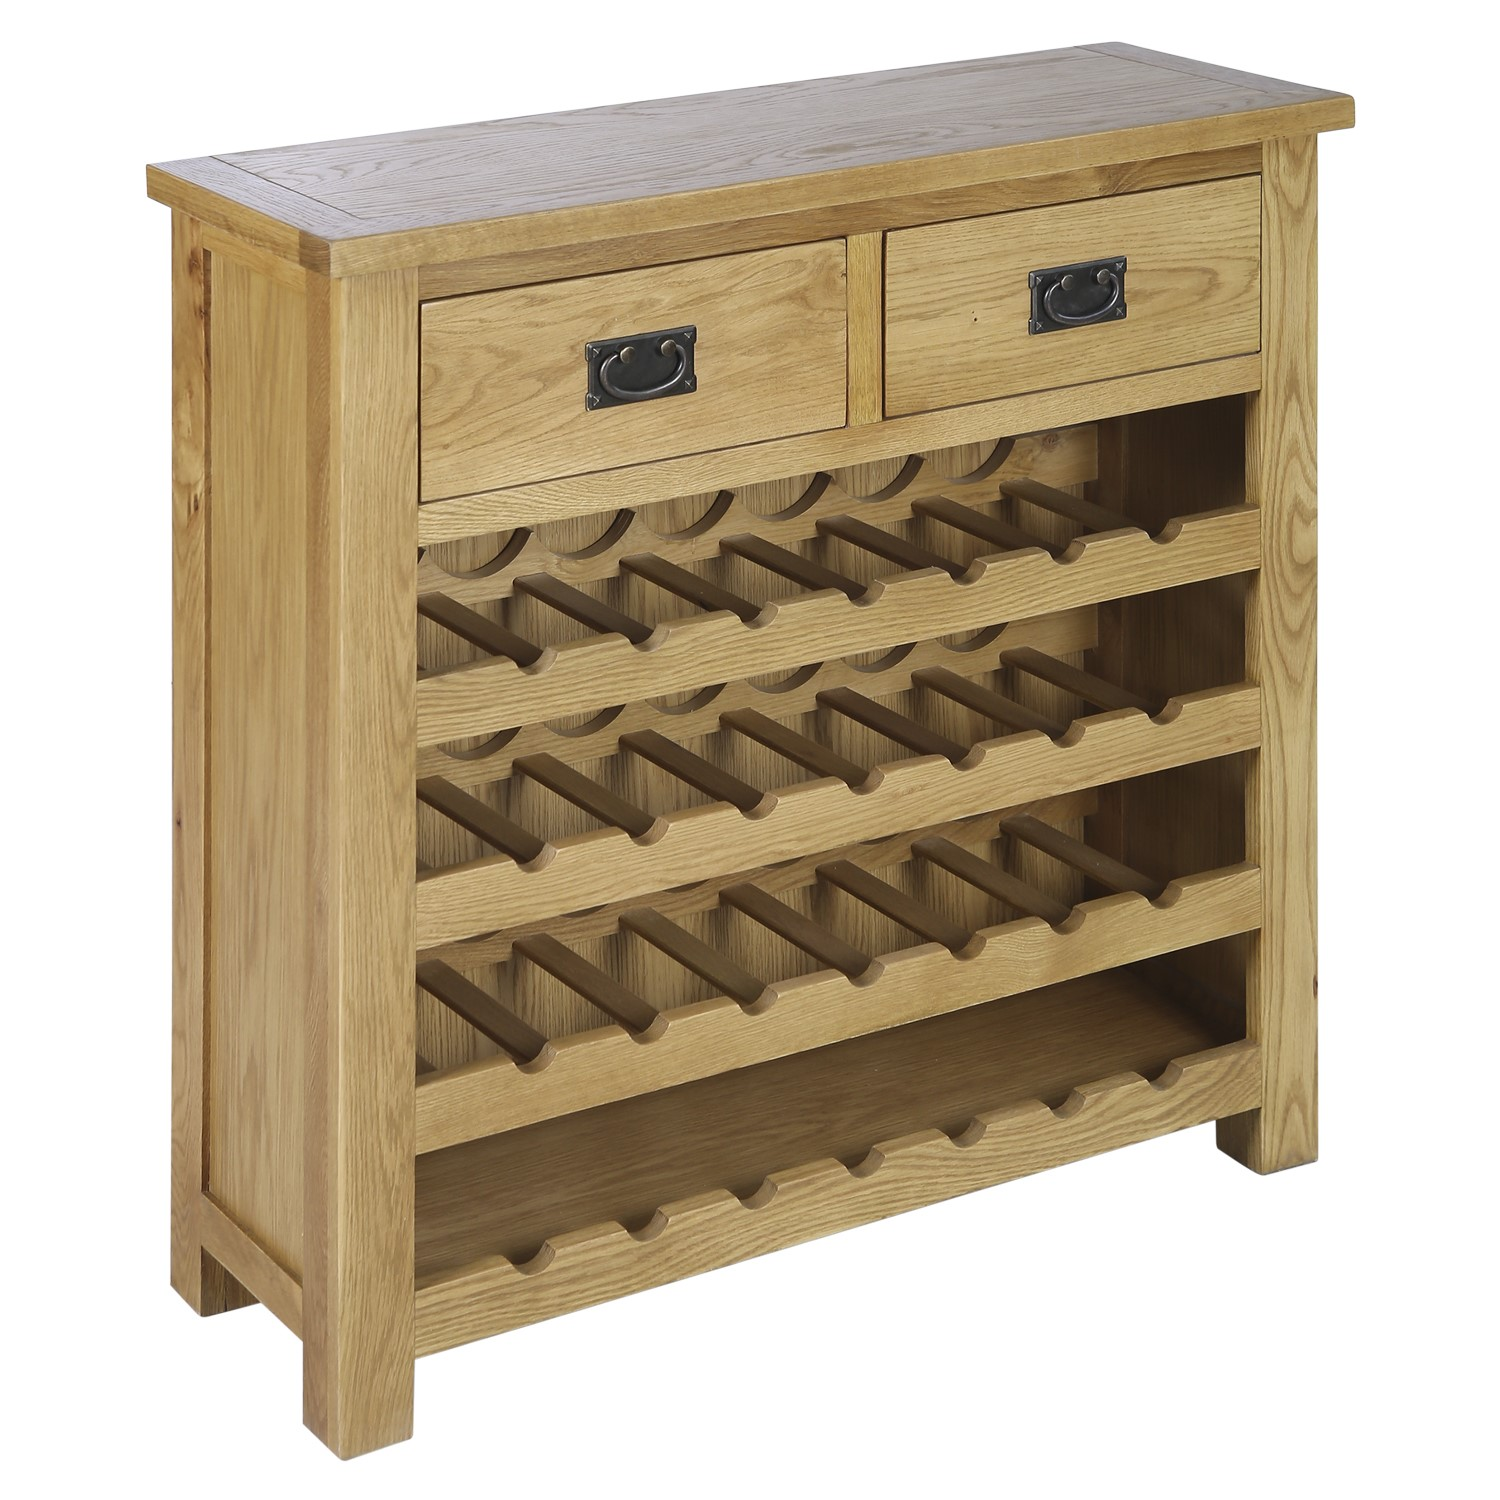 Solid Oak Wine Rack Sideboard with Drawers Rustic Saxon SAX022 5056096010763 eBay